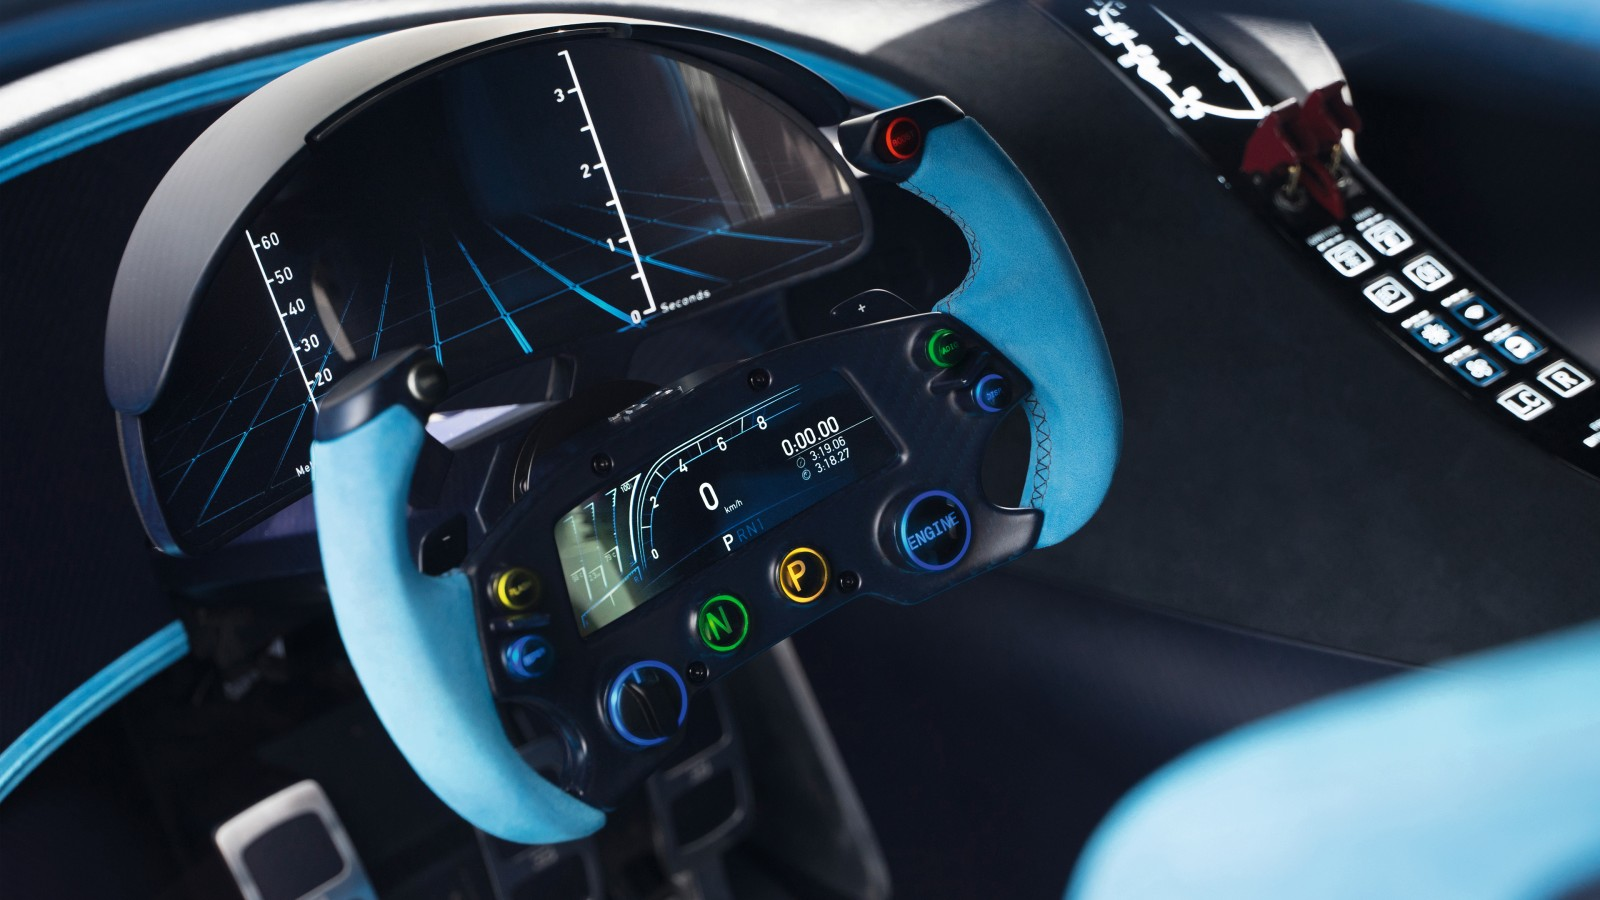 2015 Bugatti Vision Gran Turismo Interior Wallpaper  HD Car